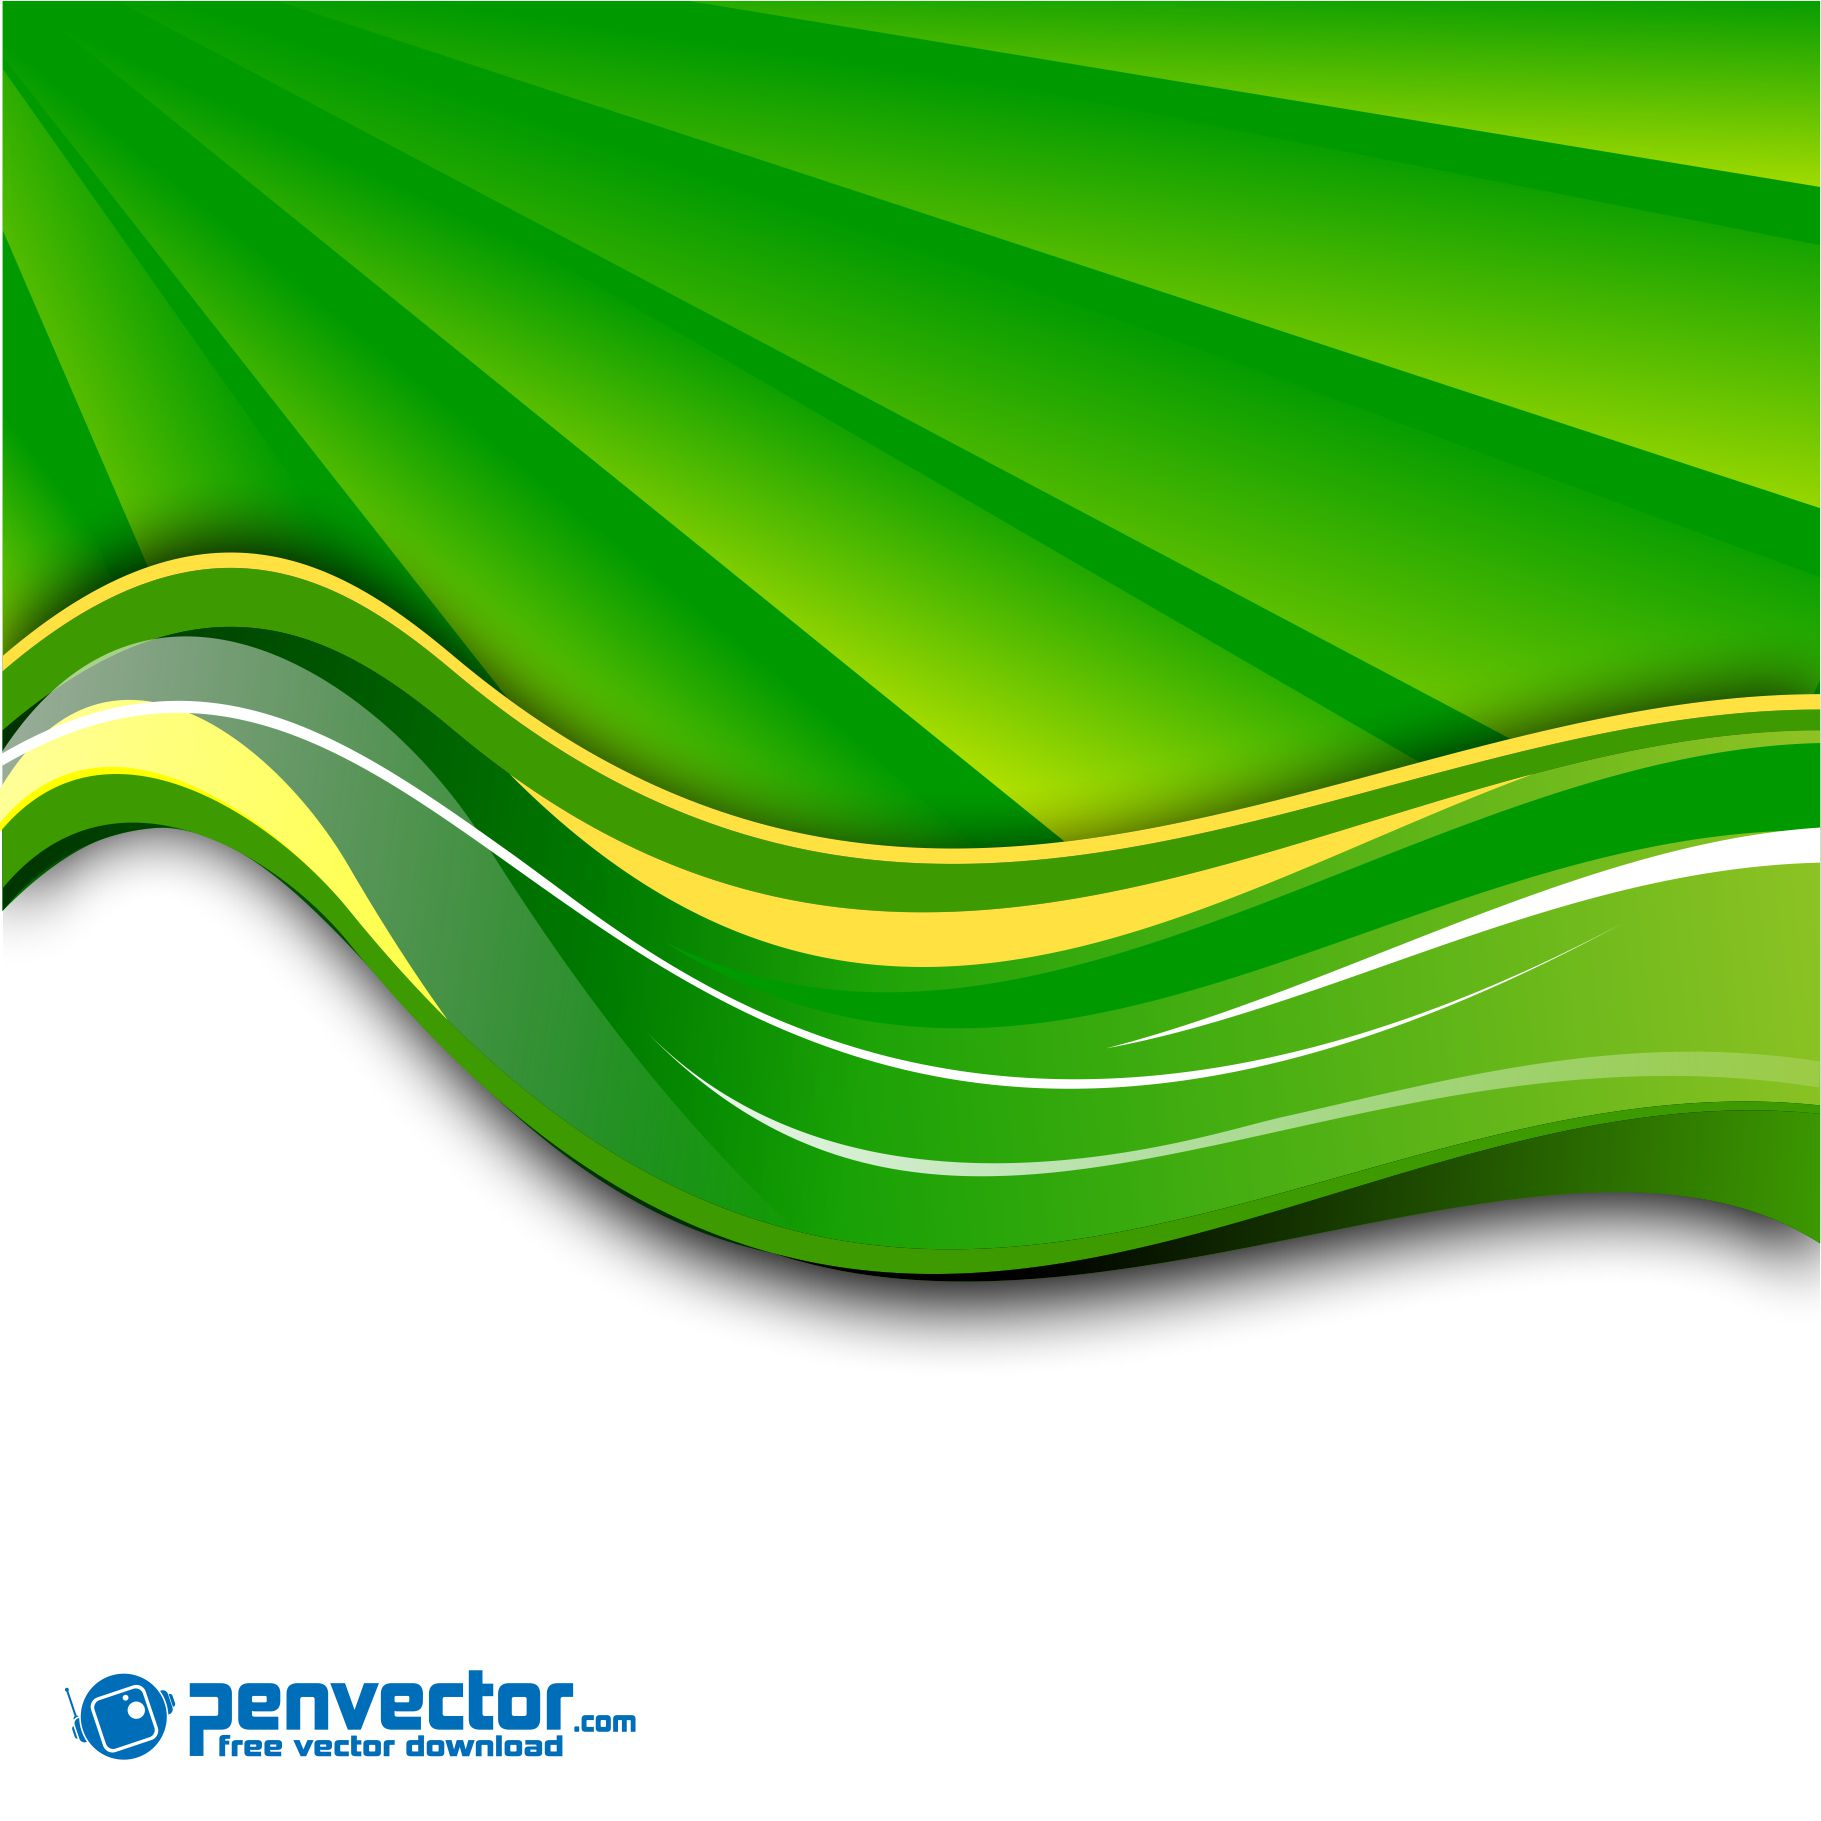 Android 3d Wallpaper Tutorial Spring Green Wave Background Free Vector Vectorpic